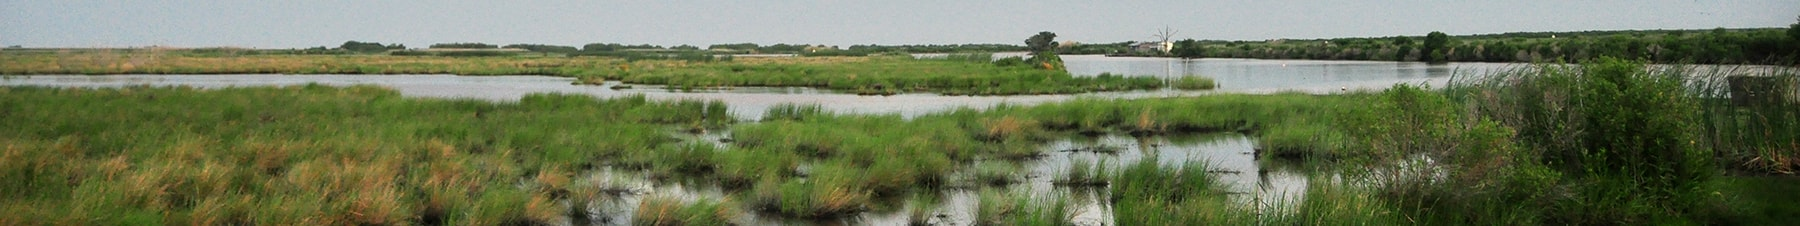 Louisiana coastal wetlands